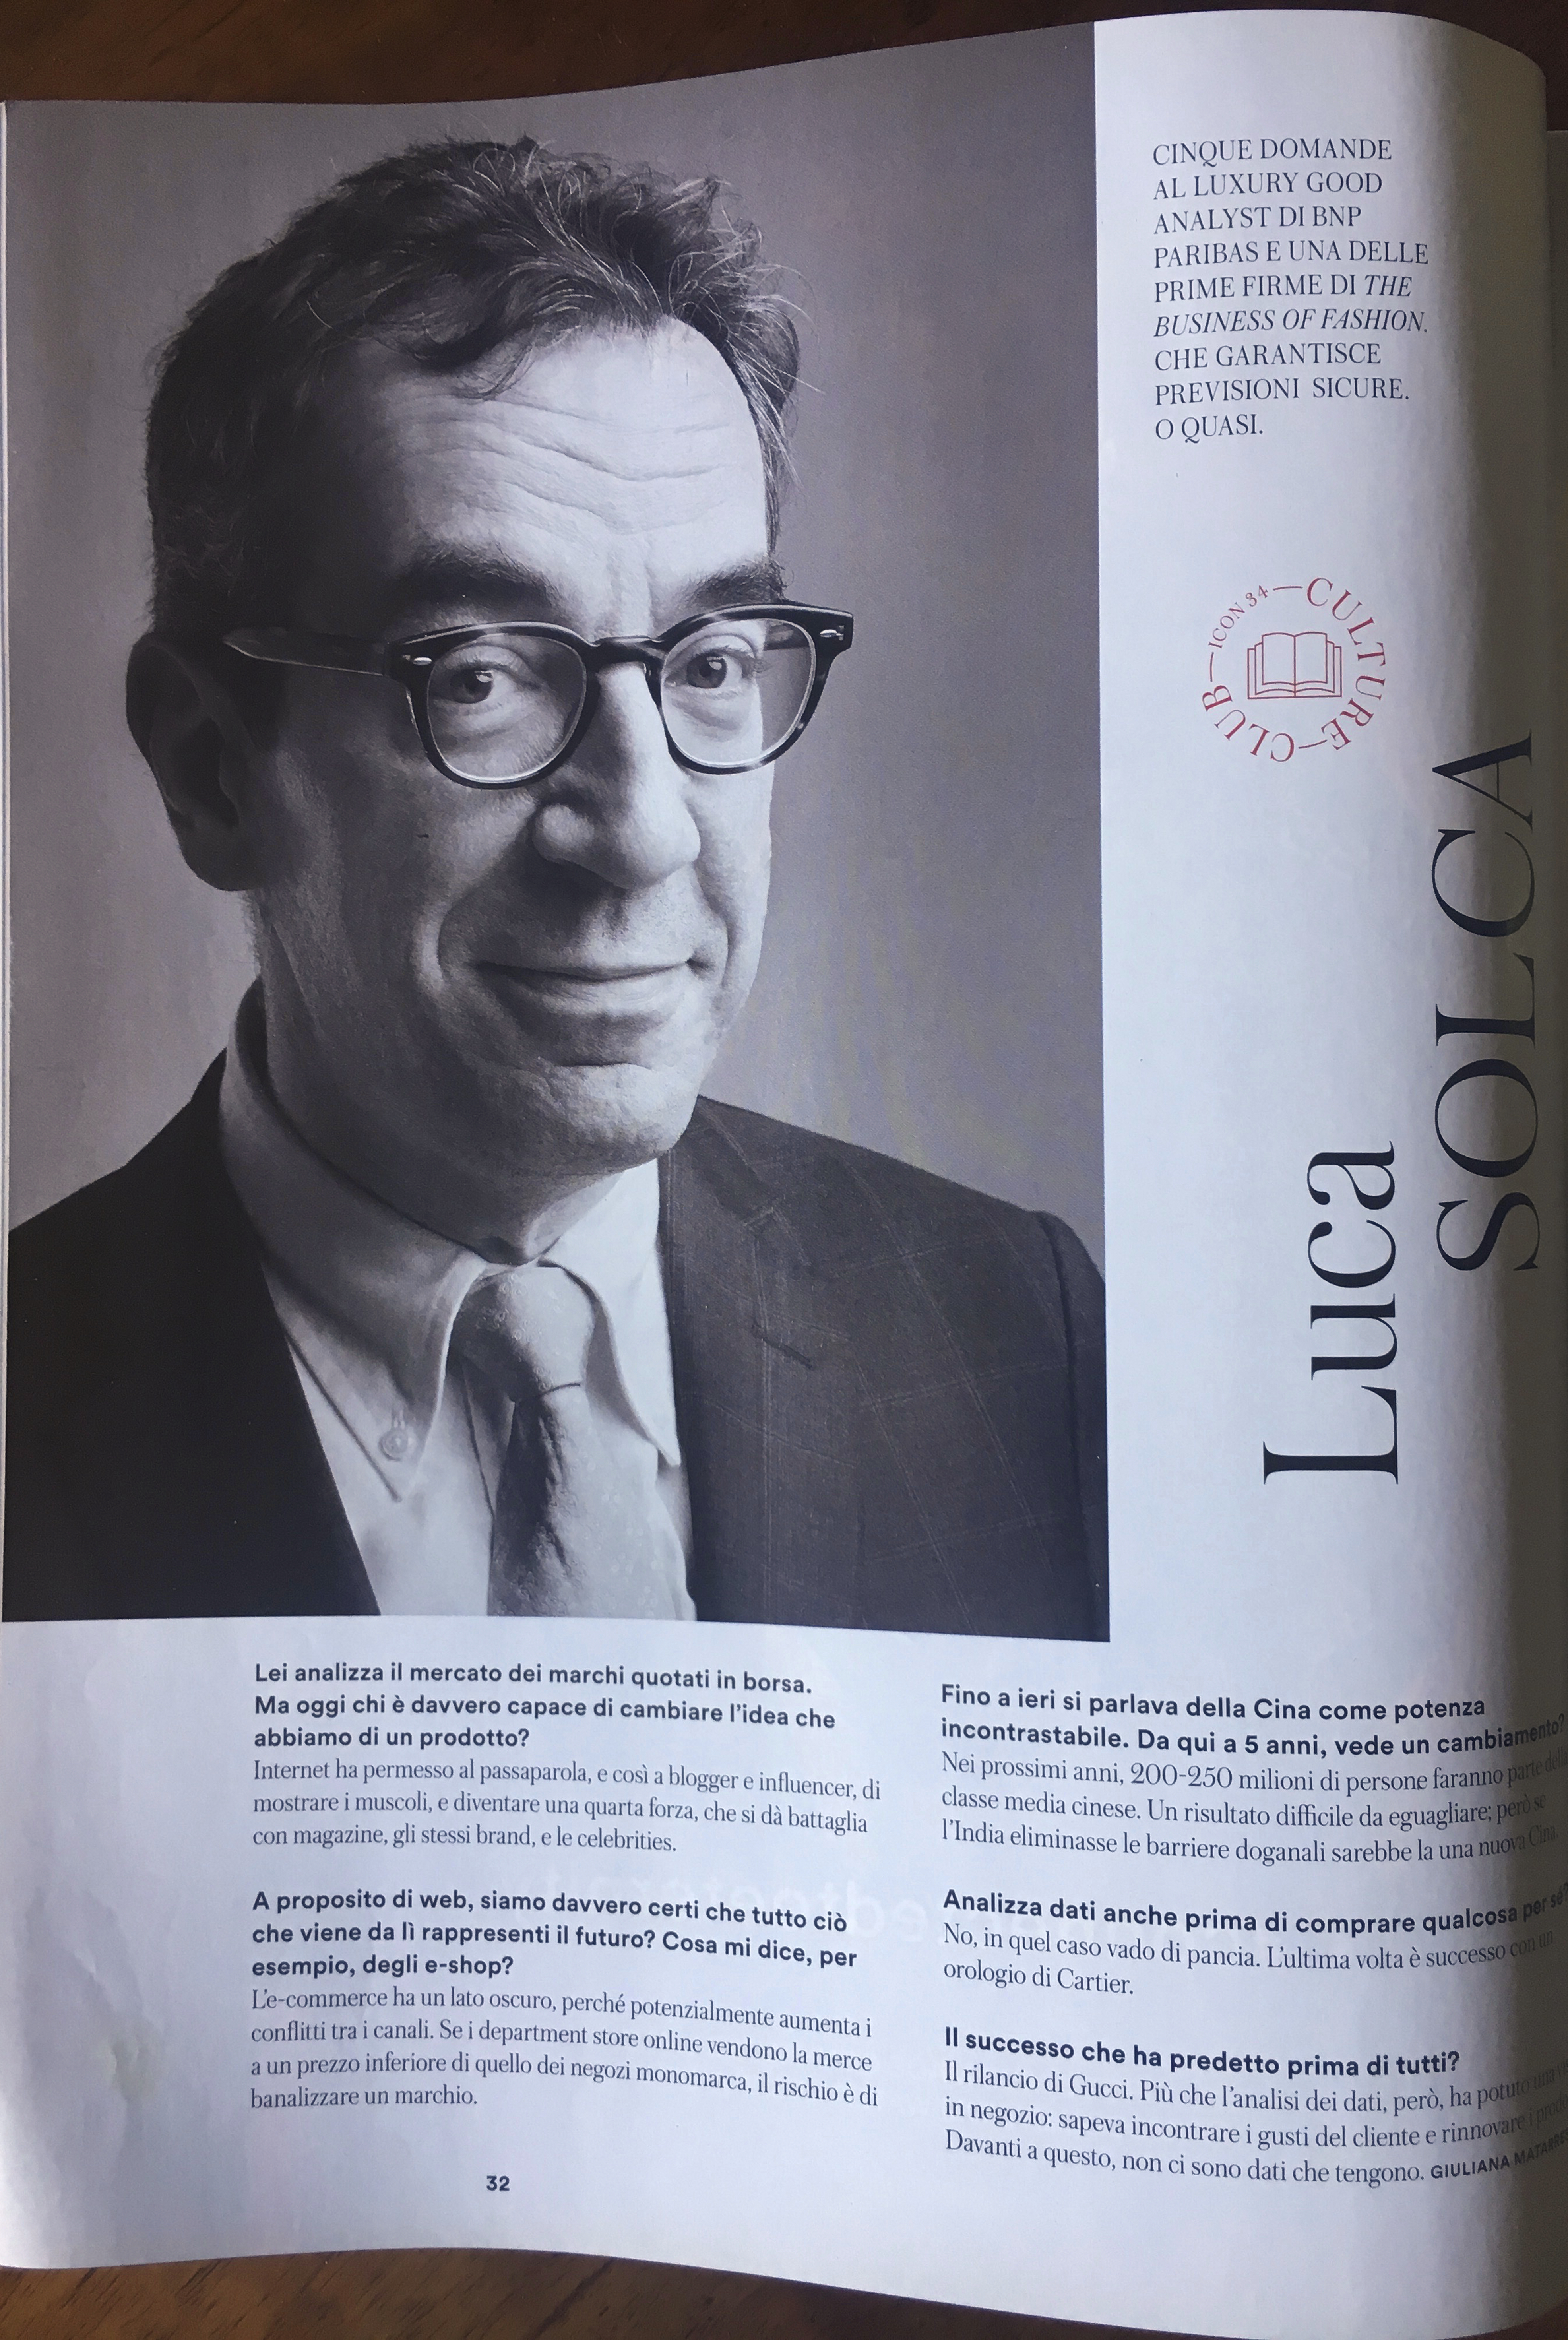 Luca Solca, Luxury Good Analist per BNP Paribas, ritratto da Gianluigi Di Napoli per Icon Magazine